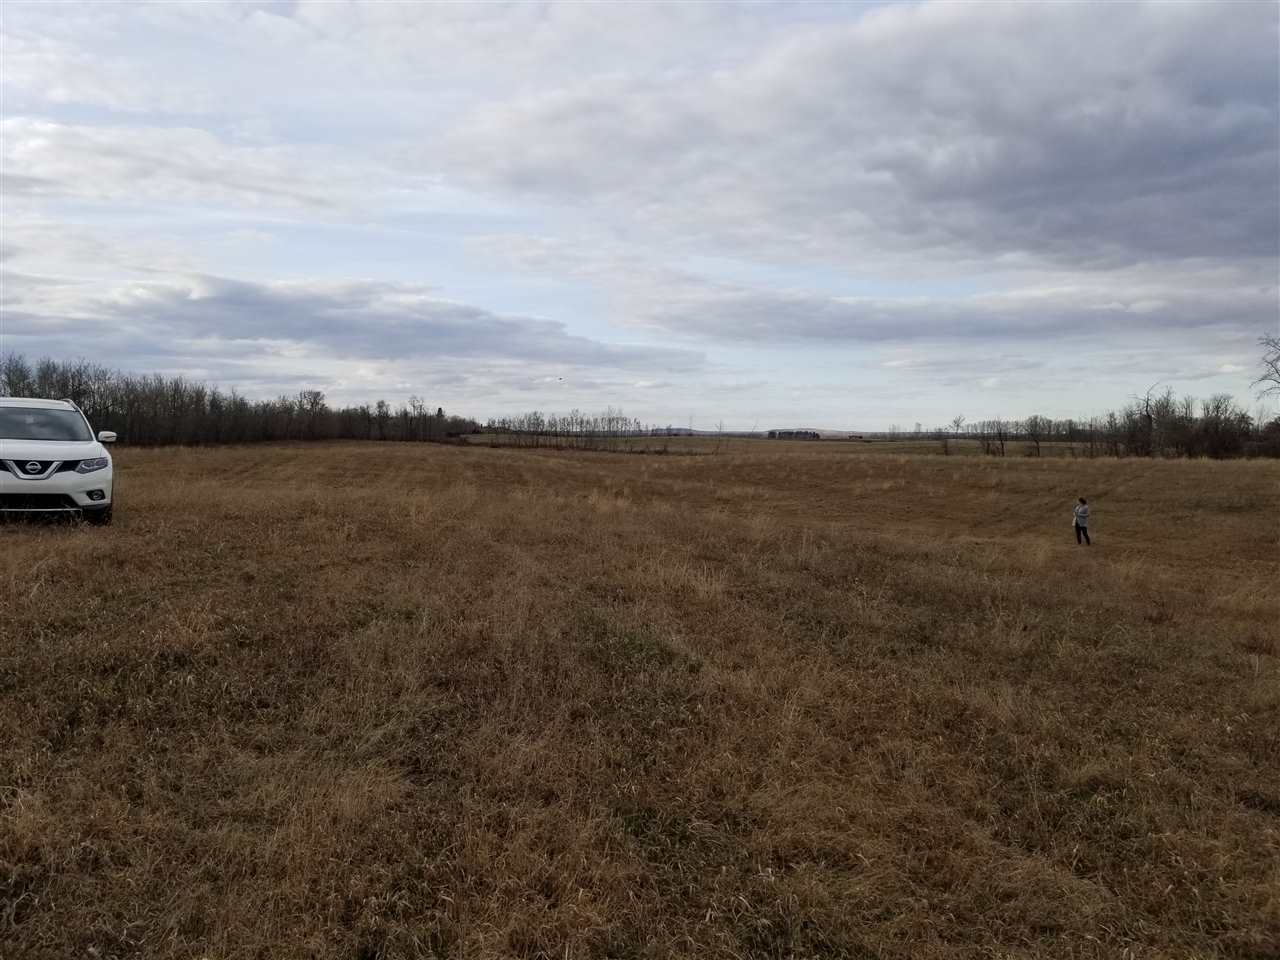 Looking for the perfect hobby farm location NOT IN A SUBDIVISION.  This 16.78 private acres of land along Fairydell Creek is very private and within 40 min of Edmonton. Approximately 16 acres of environmental easement are straddling this piece.Gently rolling hills provide the perfect opportunity for a walkout basement. Surrounded by trees, the open field is an alfalfa/grass mix. Located approximately 4 miles north of Lily Lake Resort and 4 miles West.